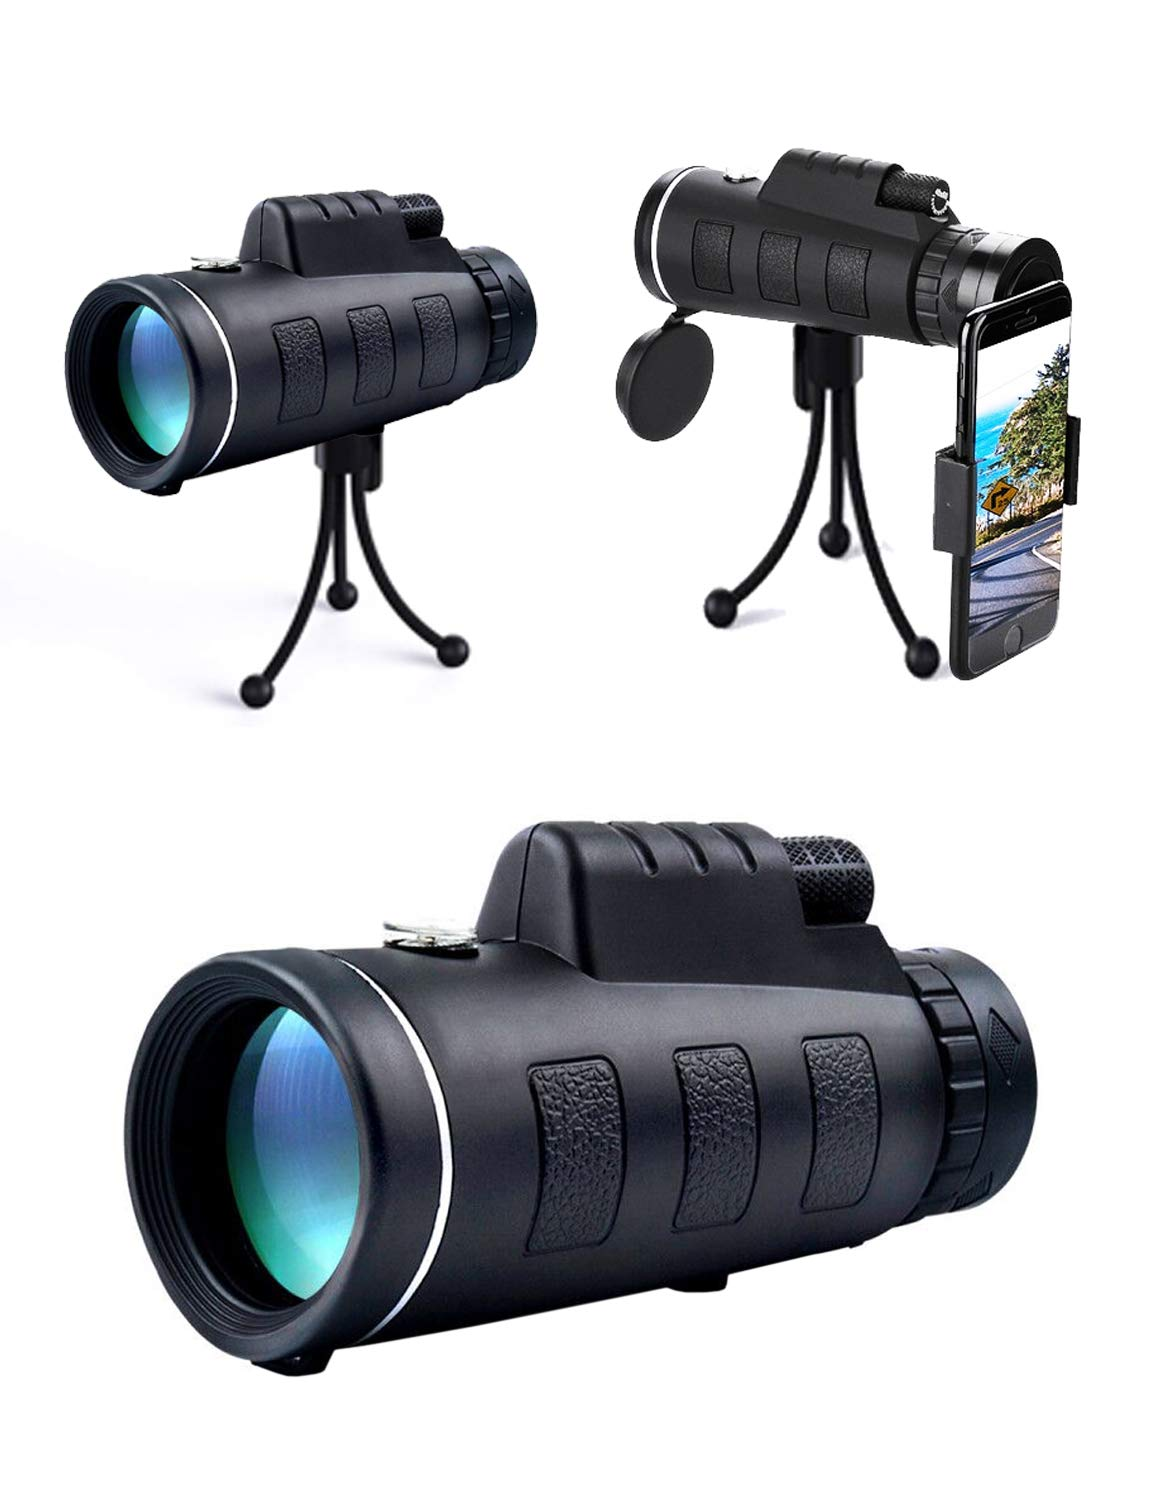 A must have for bird watchers